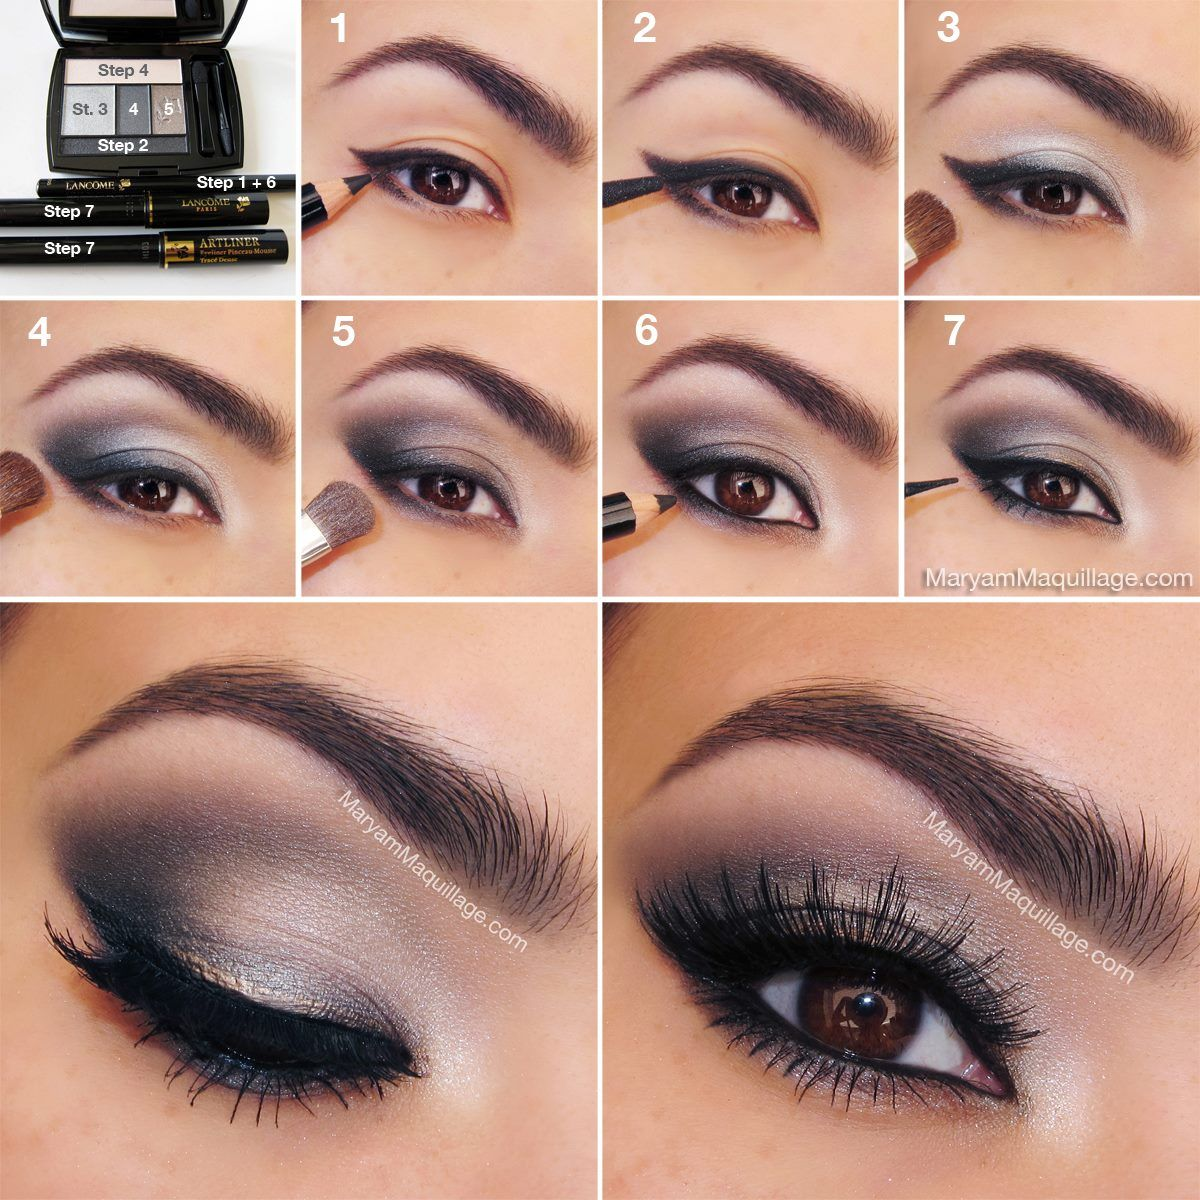 Easy Wedding Makeup Tutorial : Easy Eye Makeup Tutorial Pictures, Photos, and Images for ...